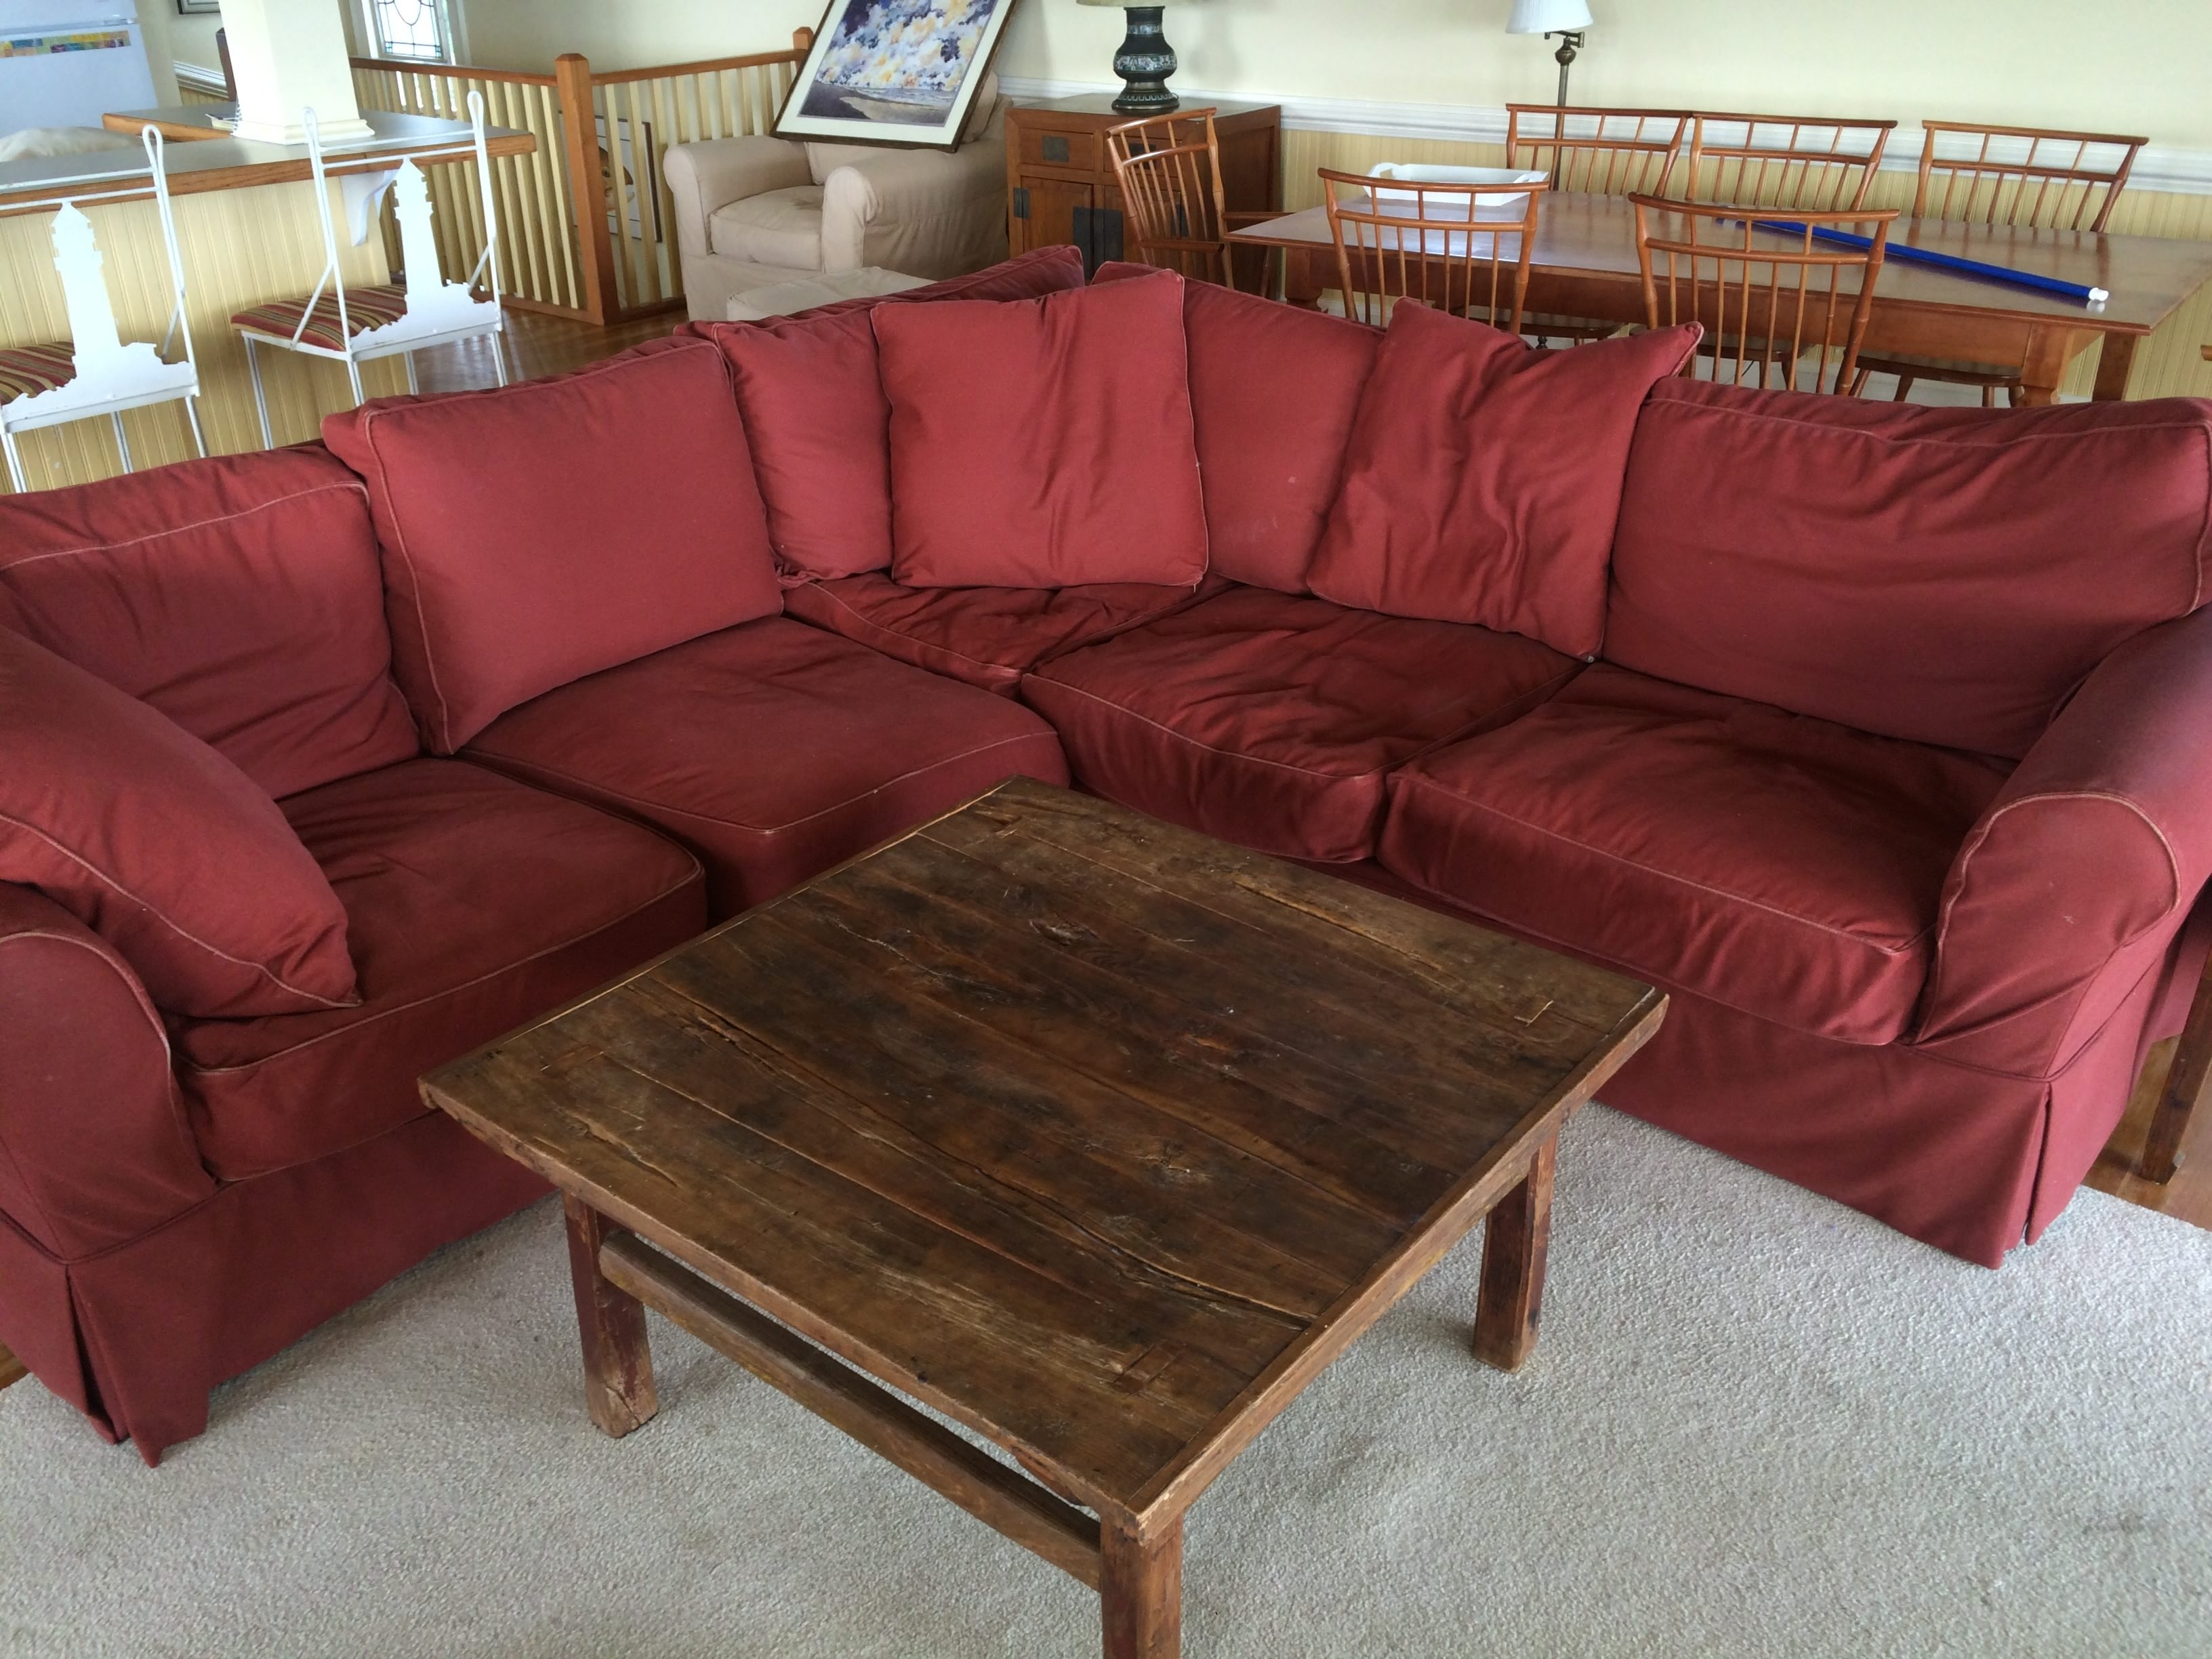 Down Filled Sectional Sofa Hereo Sofa With Down Filled Sectional Sofas (#4 of 12)